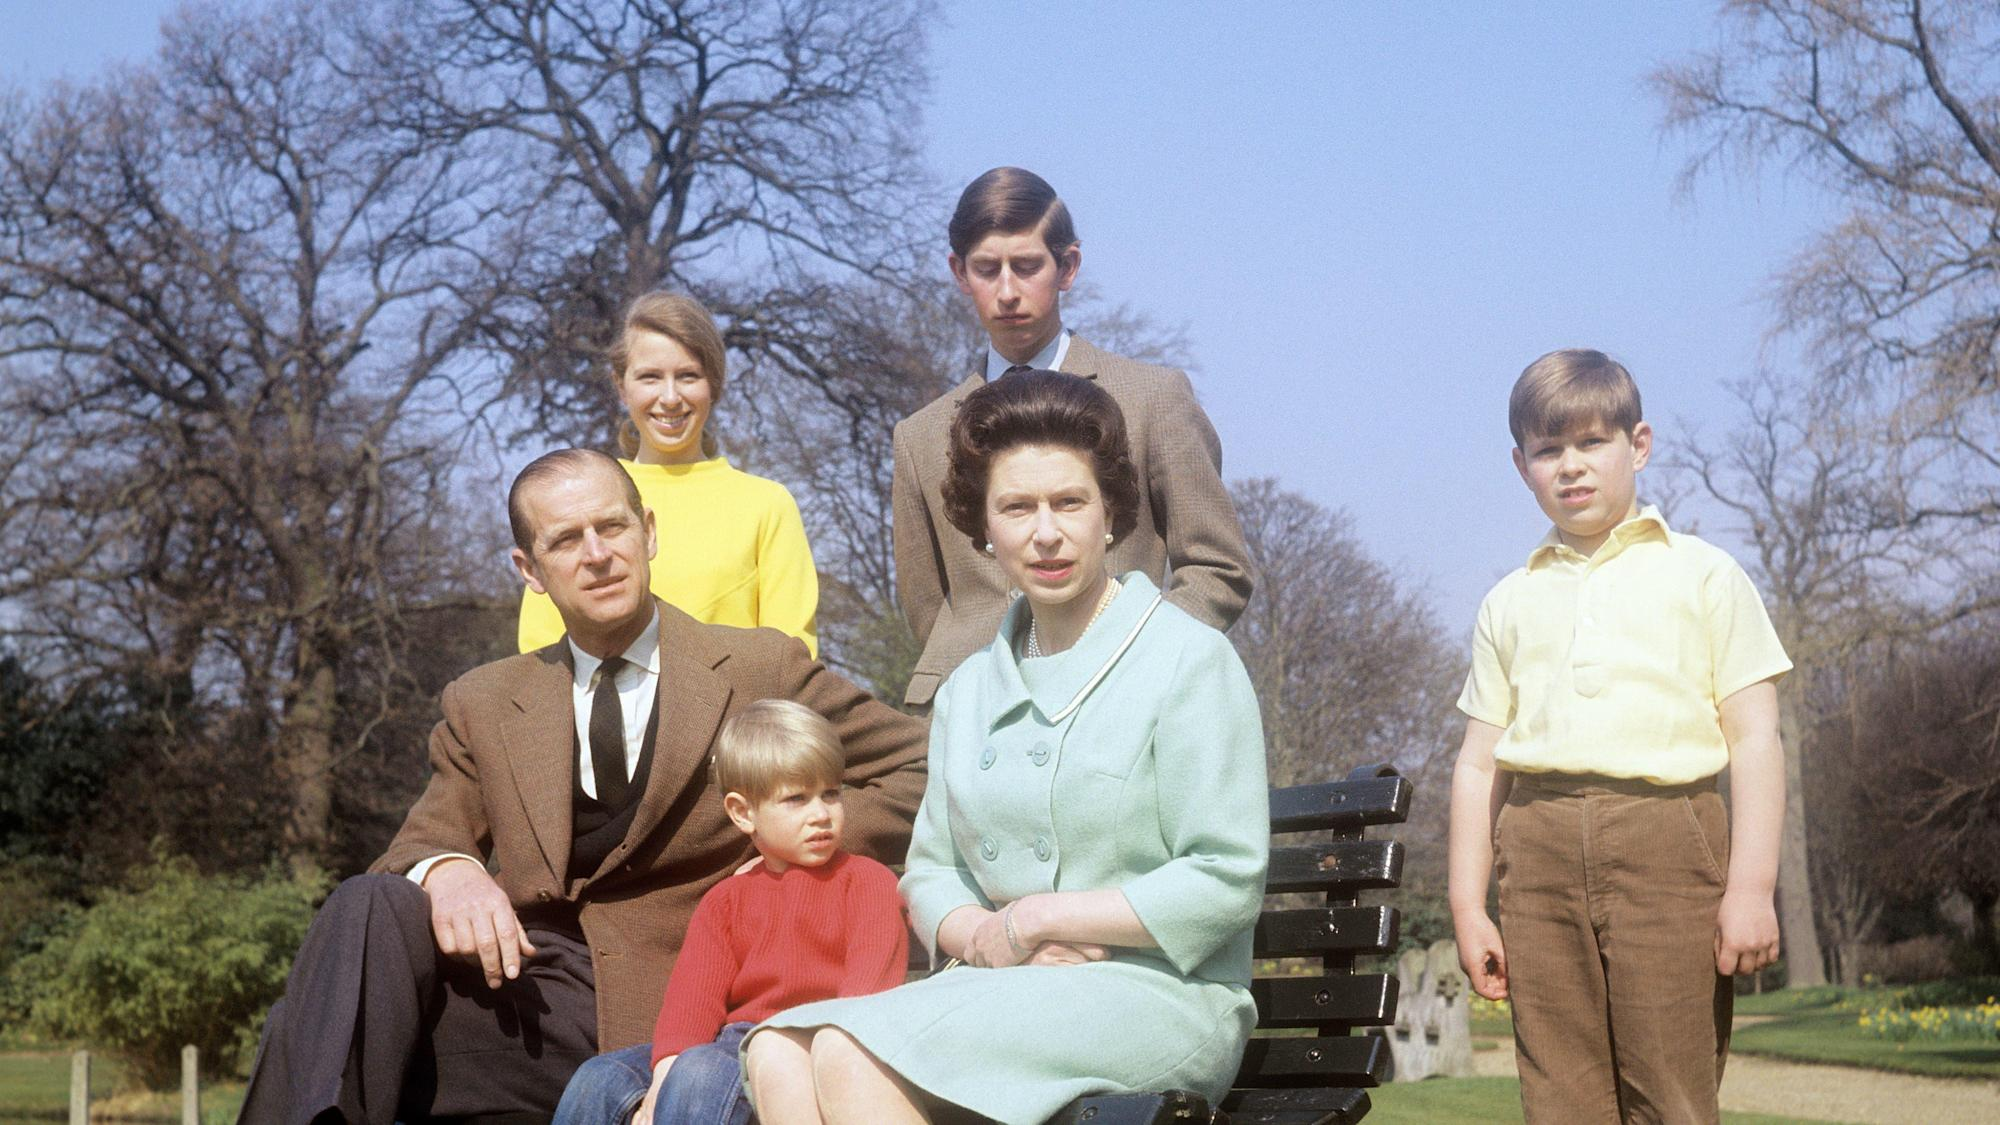 Royal family's banned documentary found on YouTube before being taken down